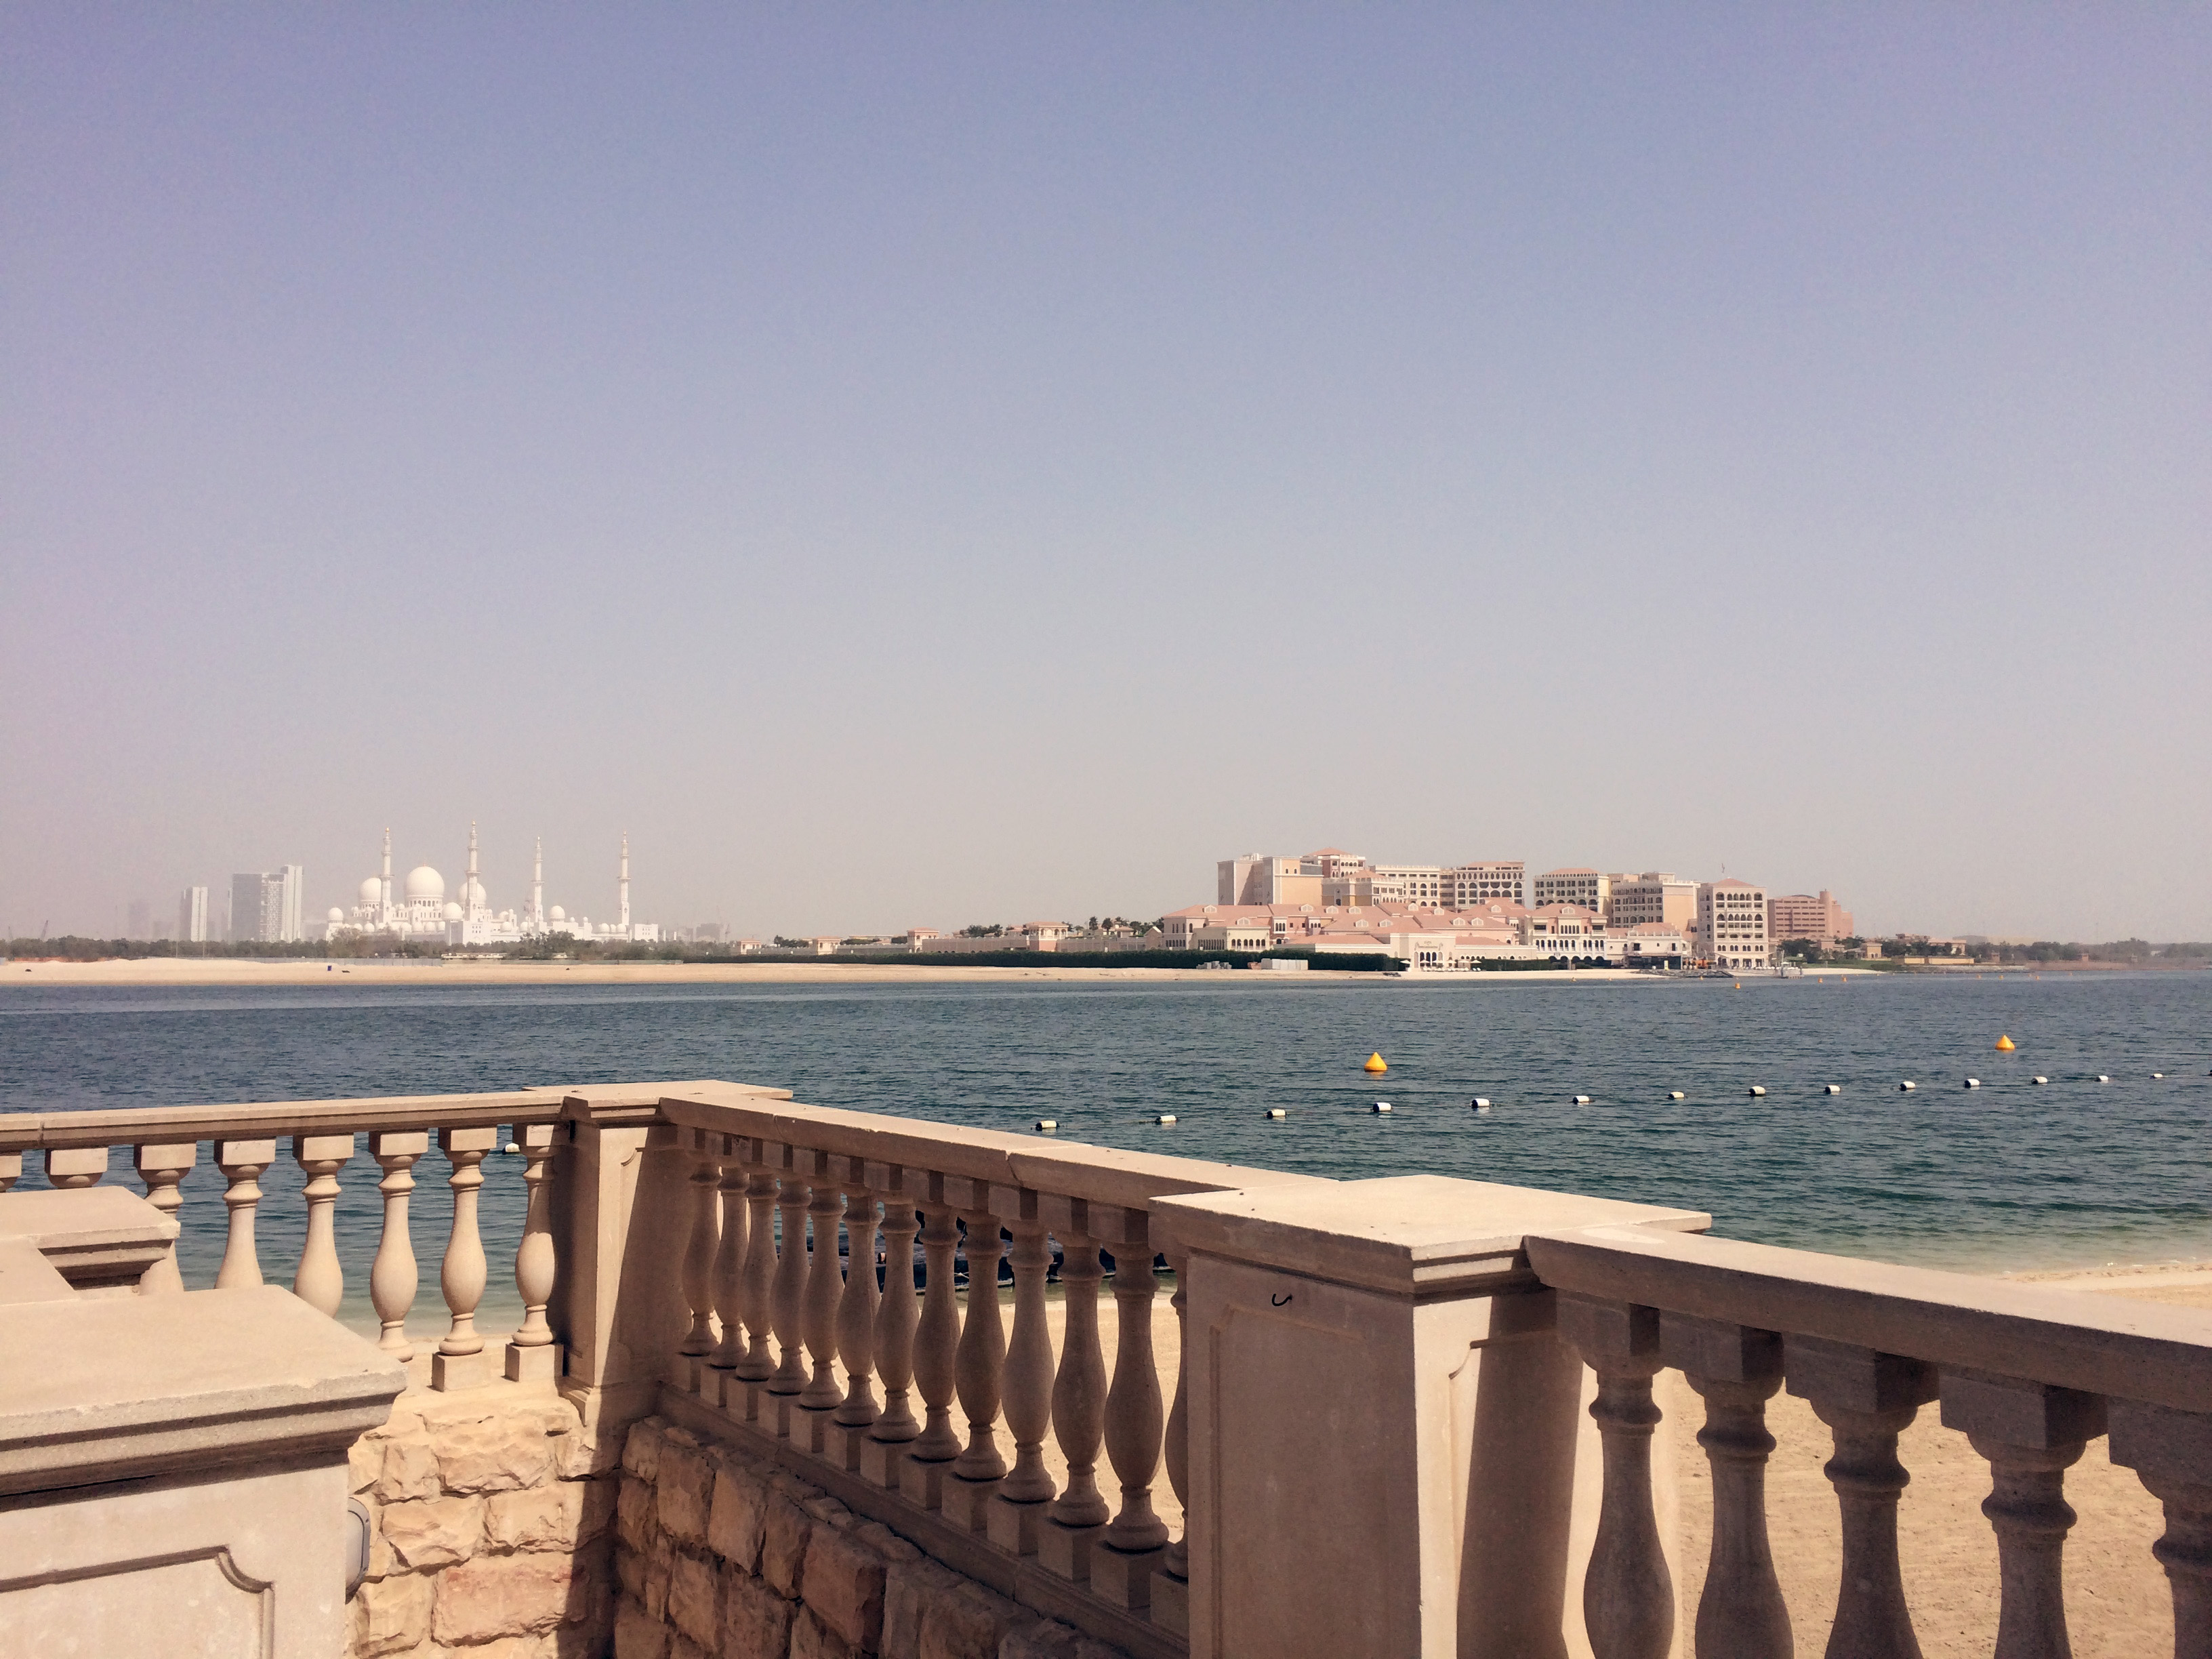 View across the water to the Sheikh Zayed Grand Mosque